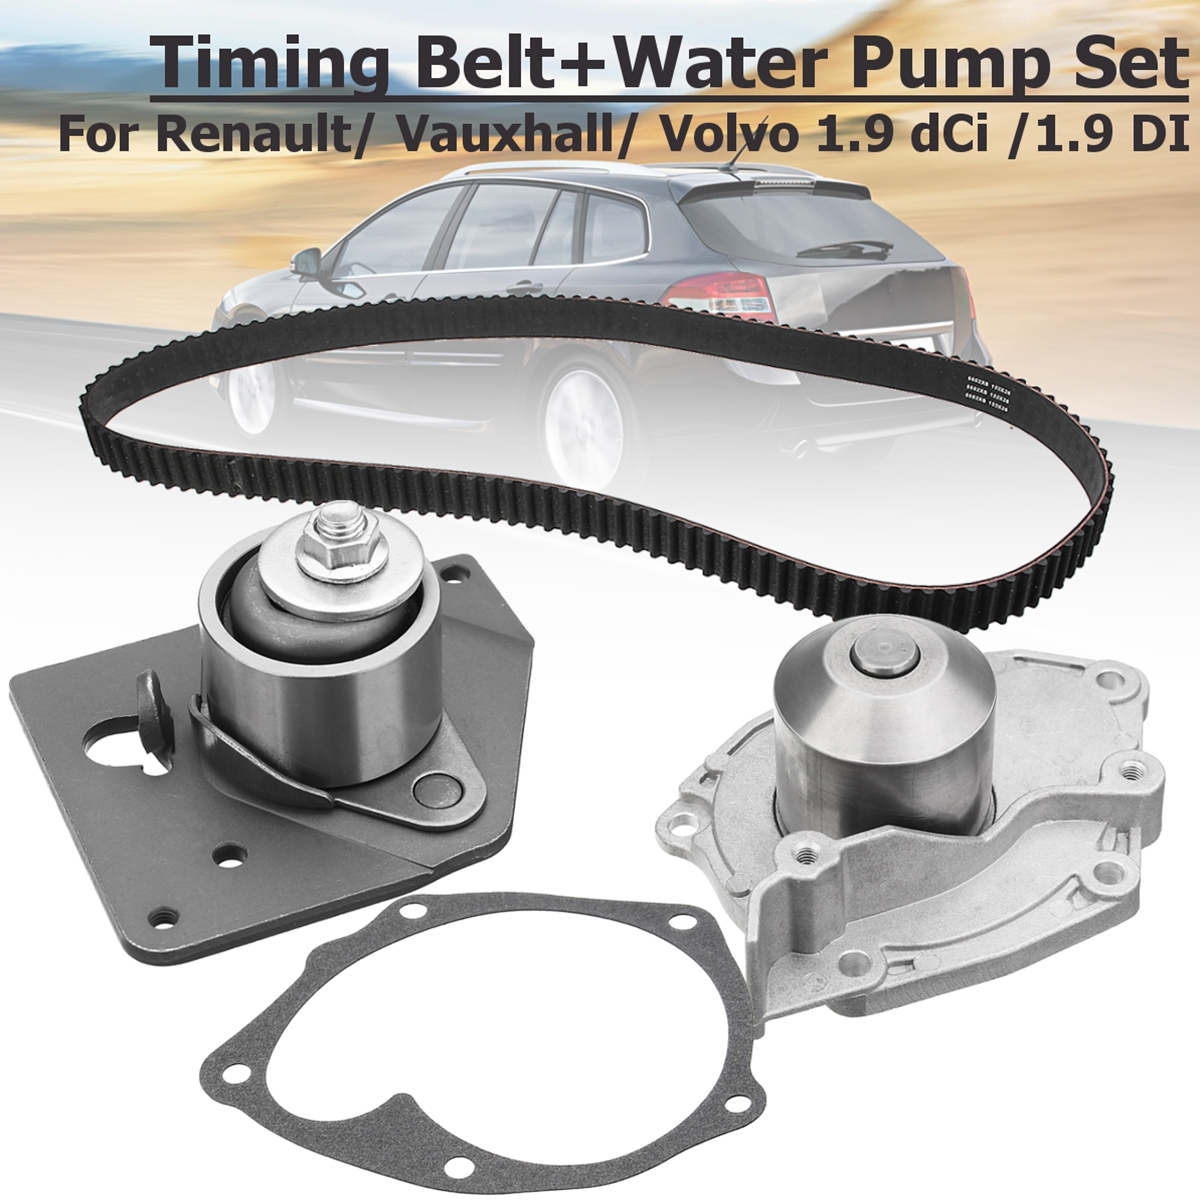 201523385842 GATES KP15552XS Timing Belt+Water Pump Set For Renault for  Vauxhall for Volvo 1.9 dCi for 1.9 DI Engines-in Inflatable Pump from  Automobiles ...